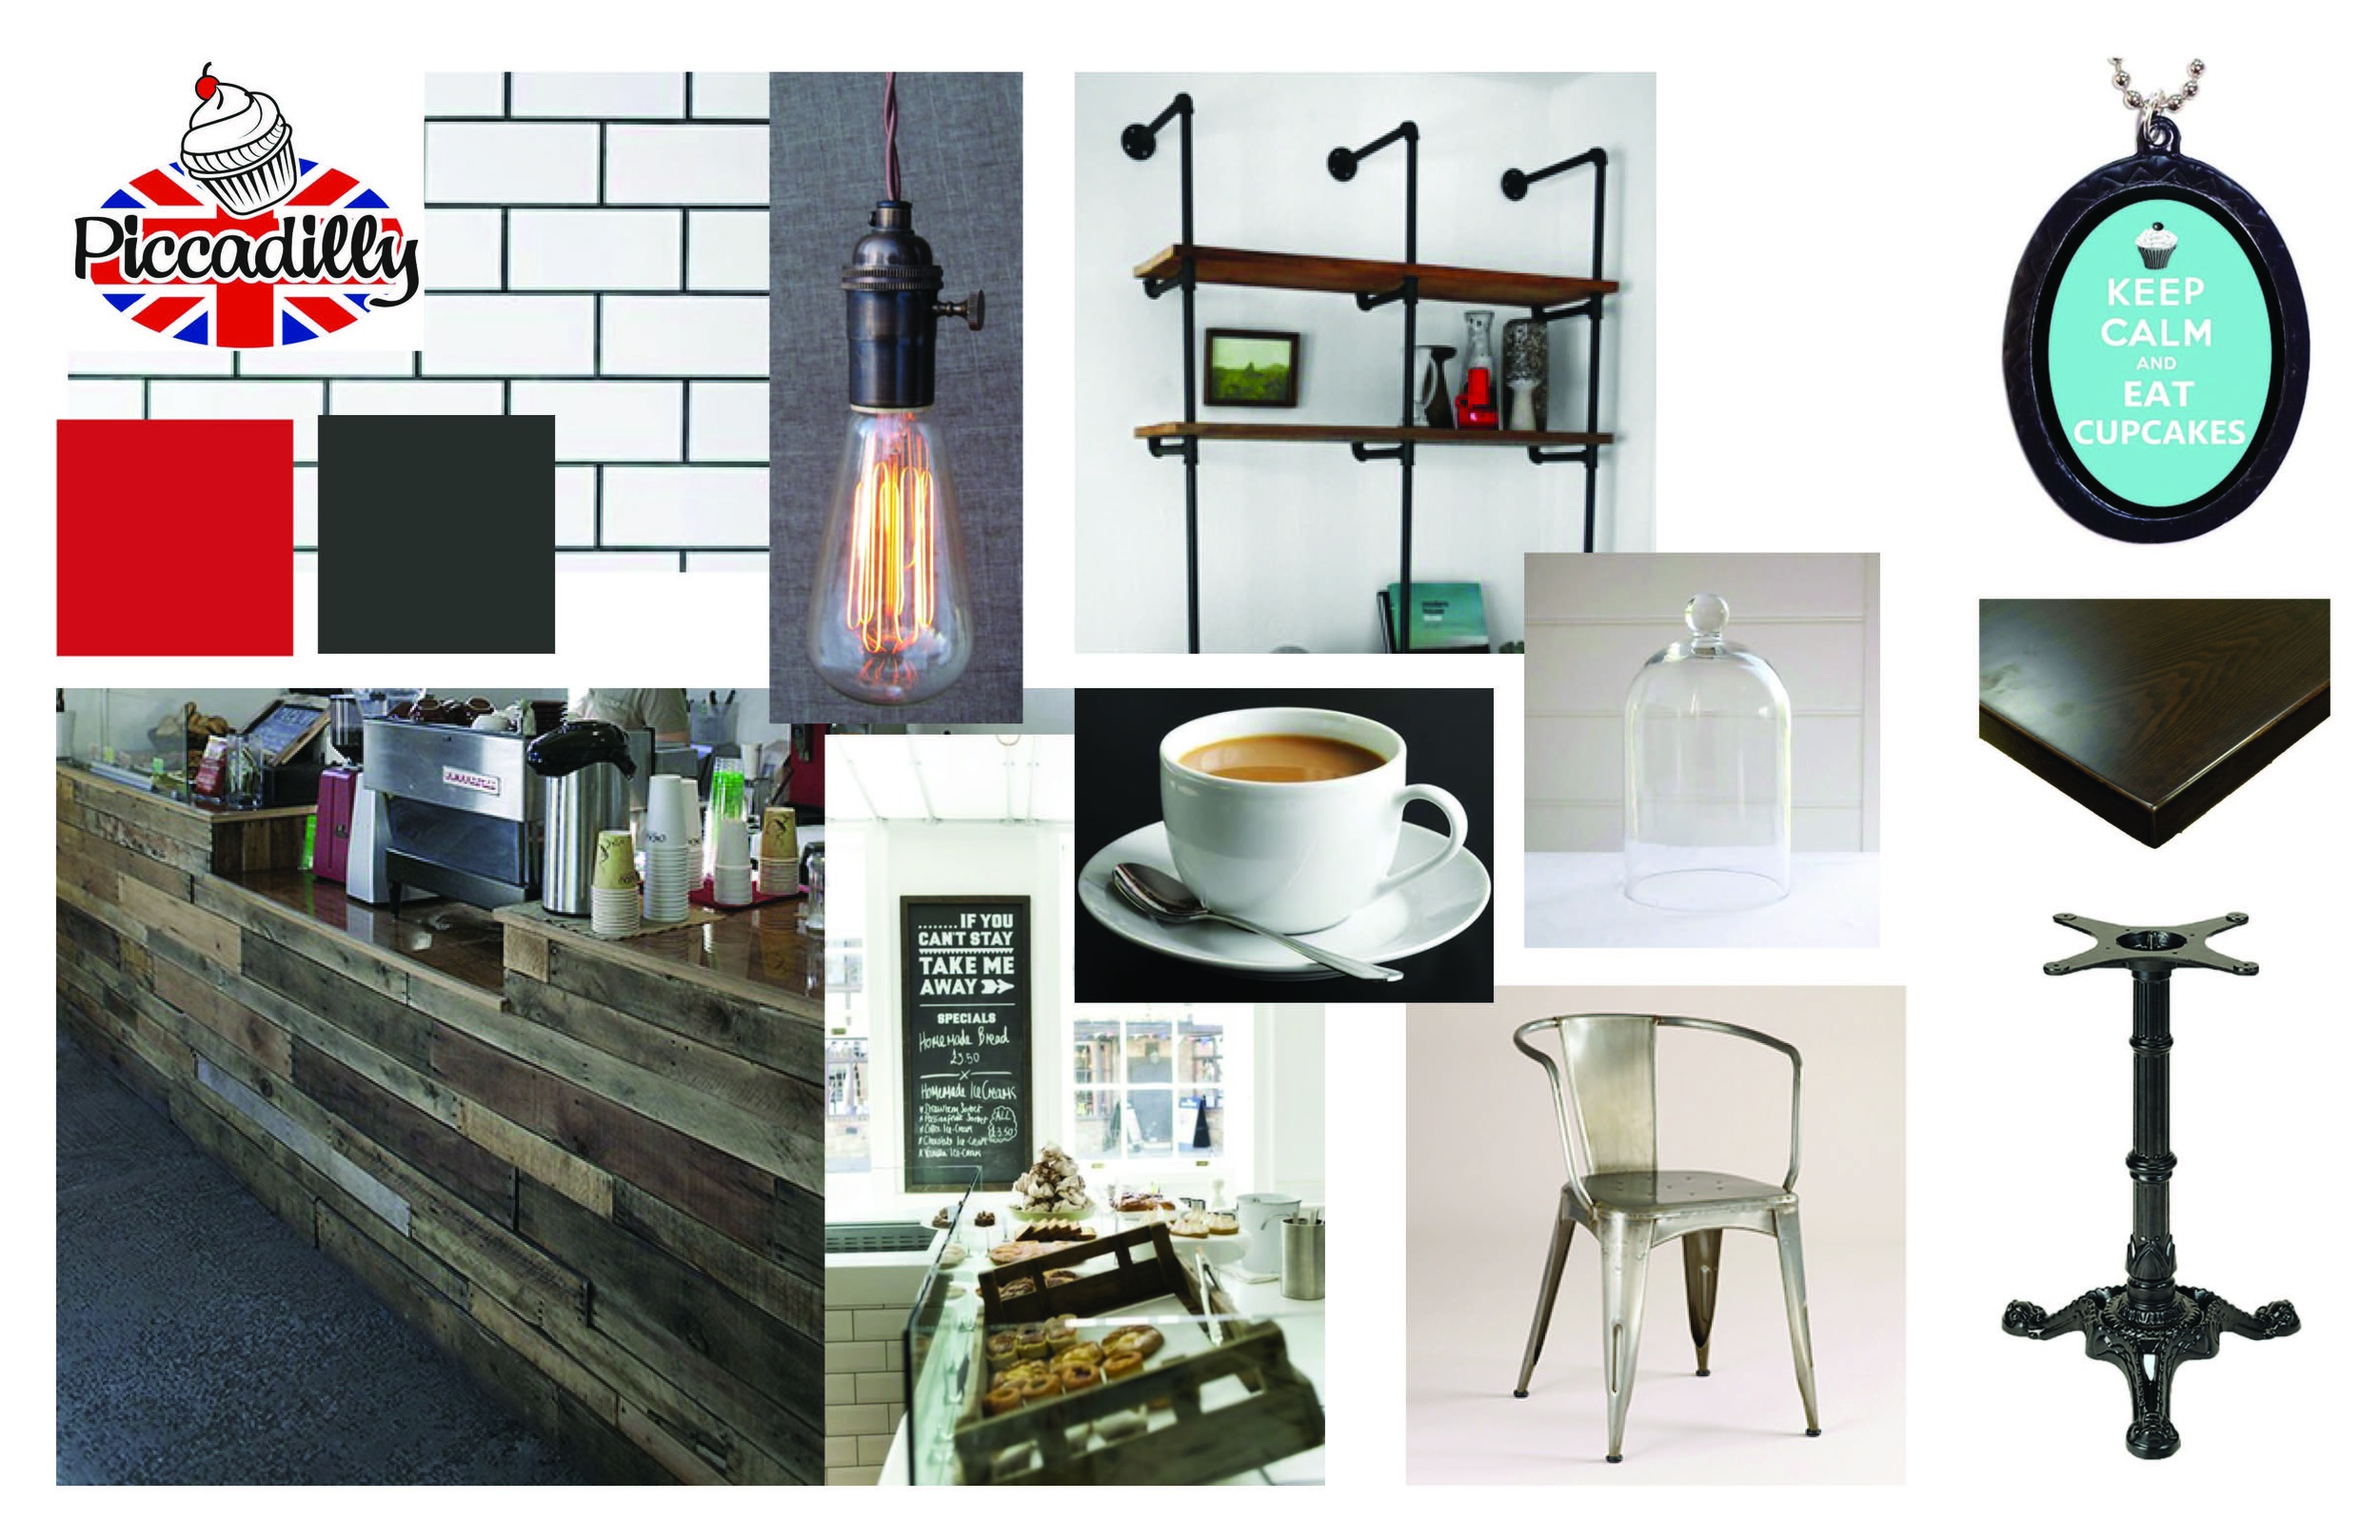 Piccadilly Concept board - Copy.jpg